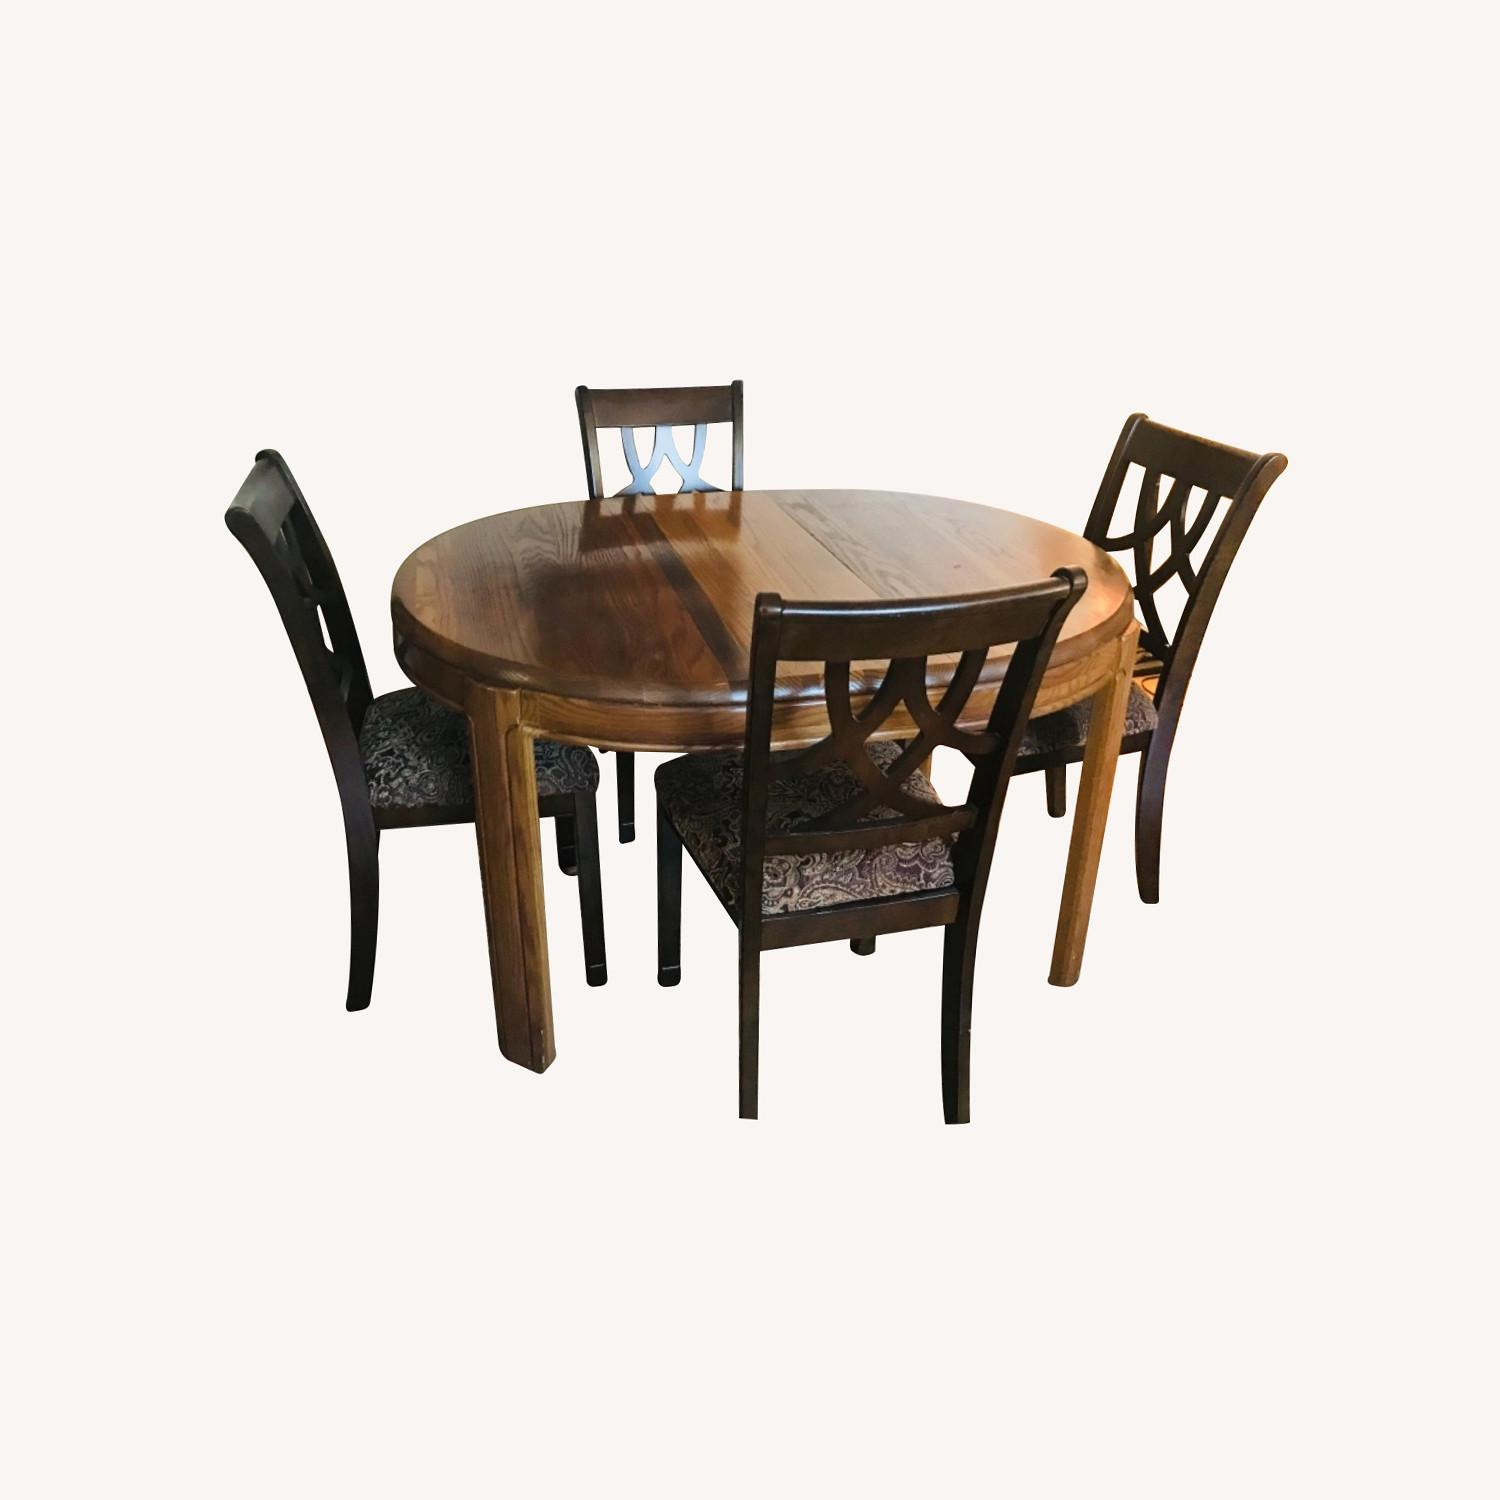 Urban Design Furnishings Dinning Table Extension Sits 10-12 - image-0